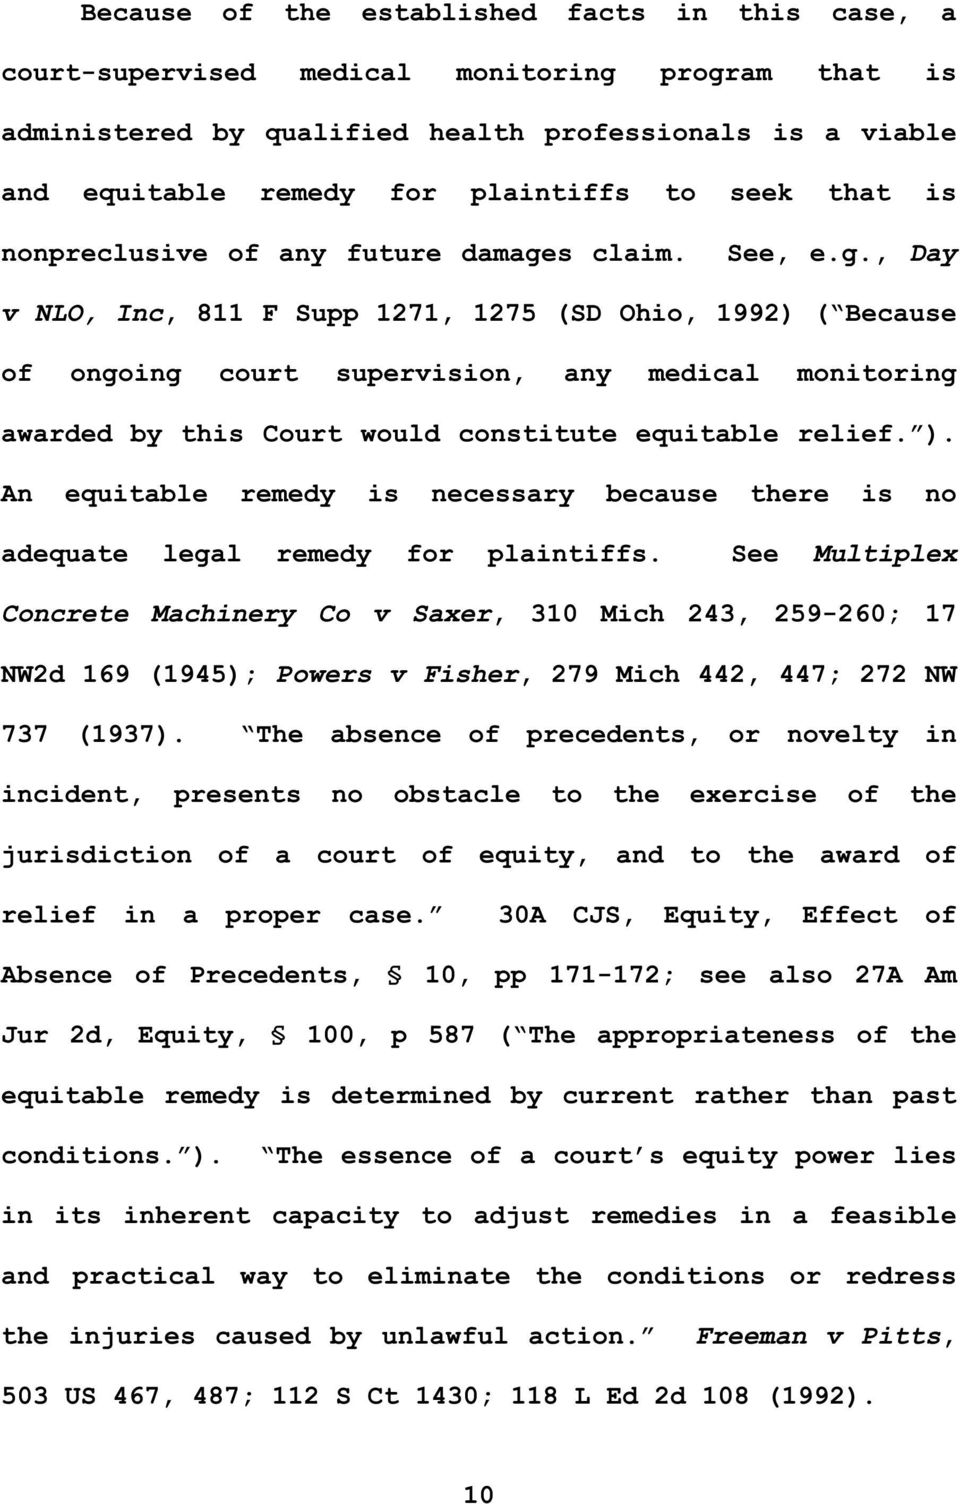 s claim. See, e.g., Day v NLO, Inc, 811 F Supp 1271, 1275 (SD Ohio, 1992) ( Because of ongoing court supervision, any medical monitoring awarded by this Court would constitute equitable relief. ).